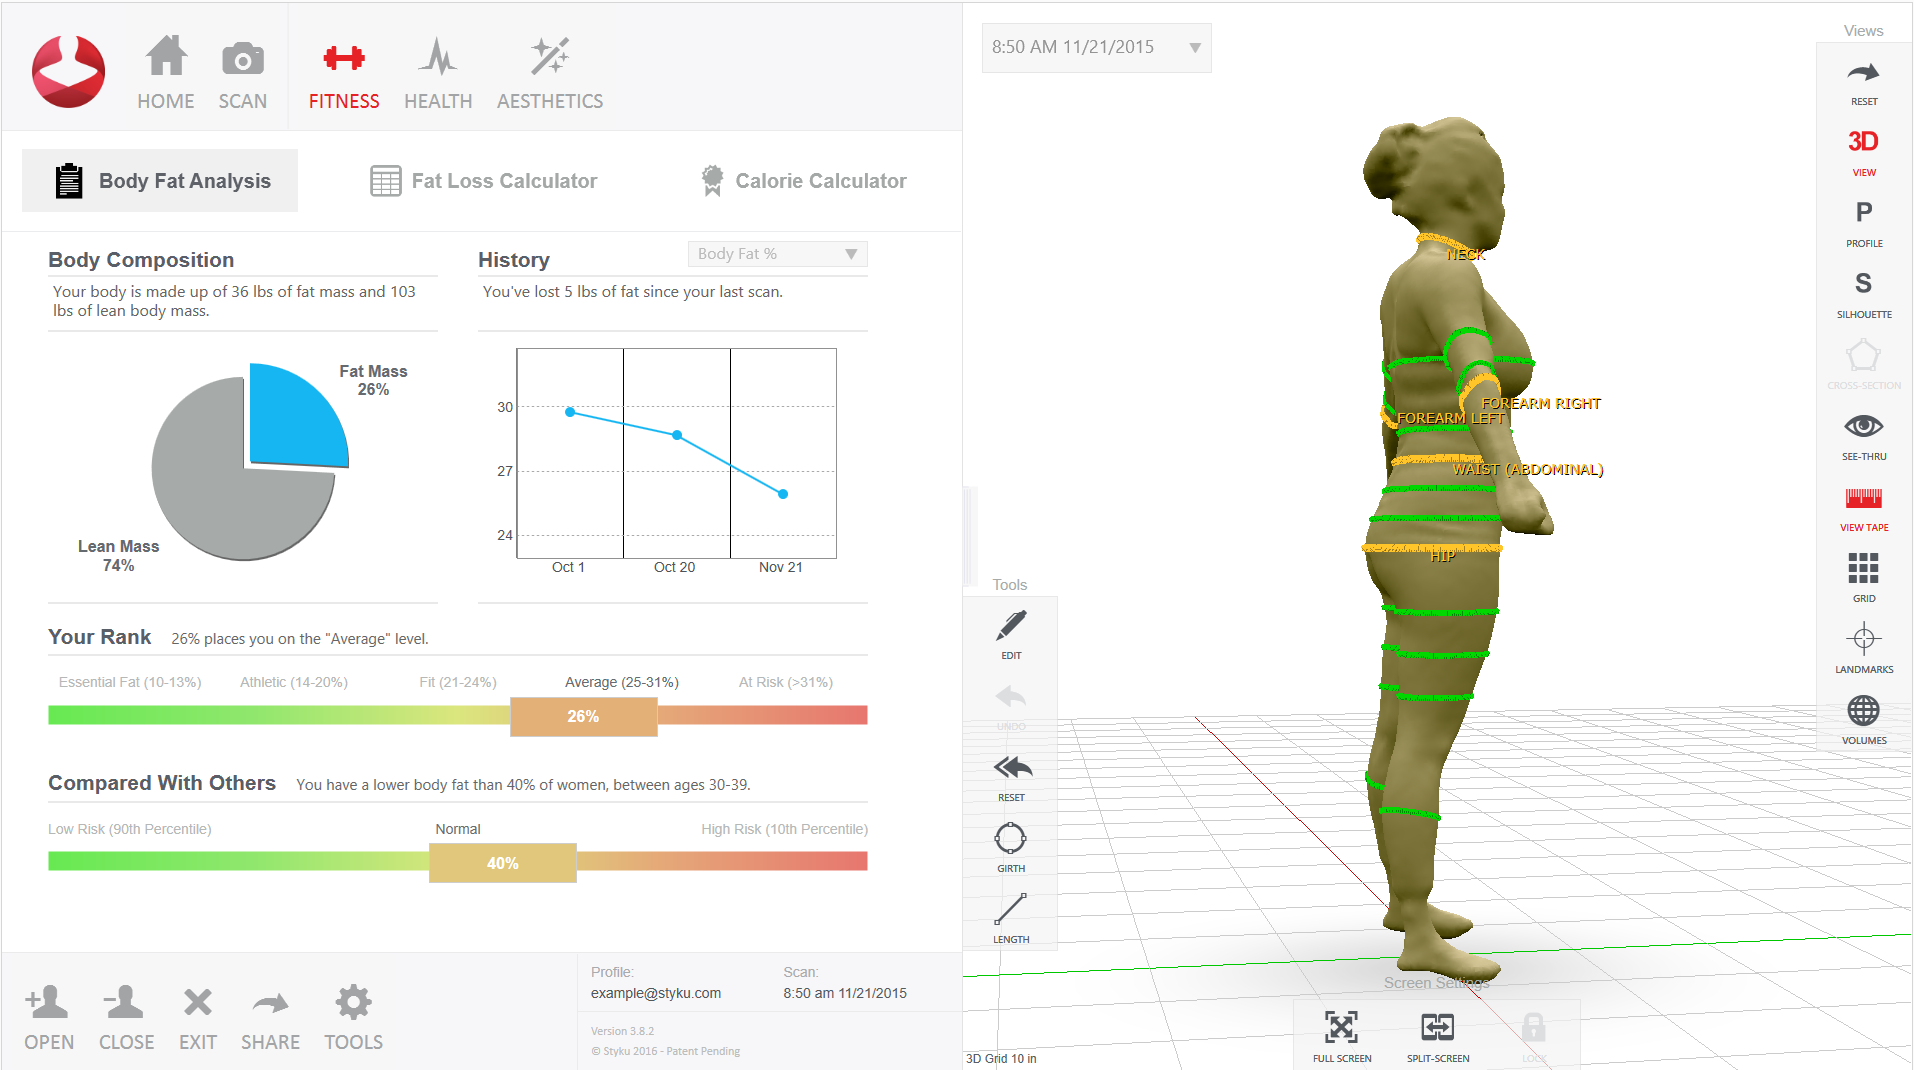 Perspective - Seeing yourself recreated as a 3 dimensional model offers you new views of yourself. We use algorithms to give you a body compostion reading and metabolic rate, allowing you to more clearly define and achieve your goals